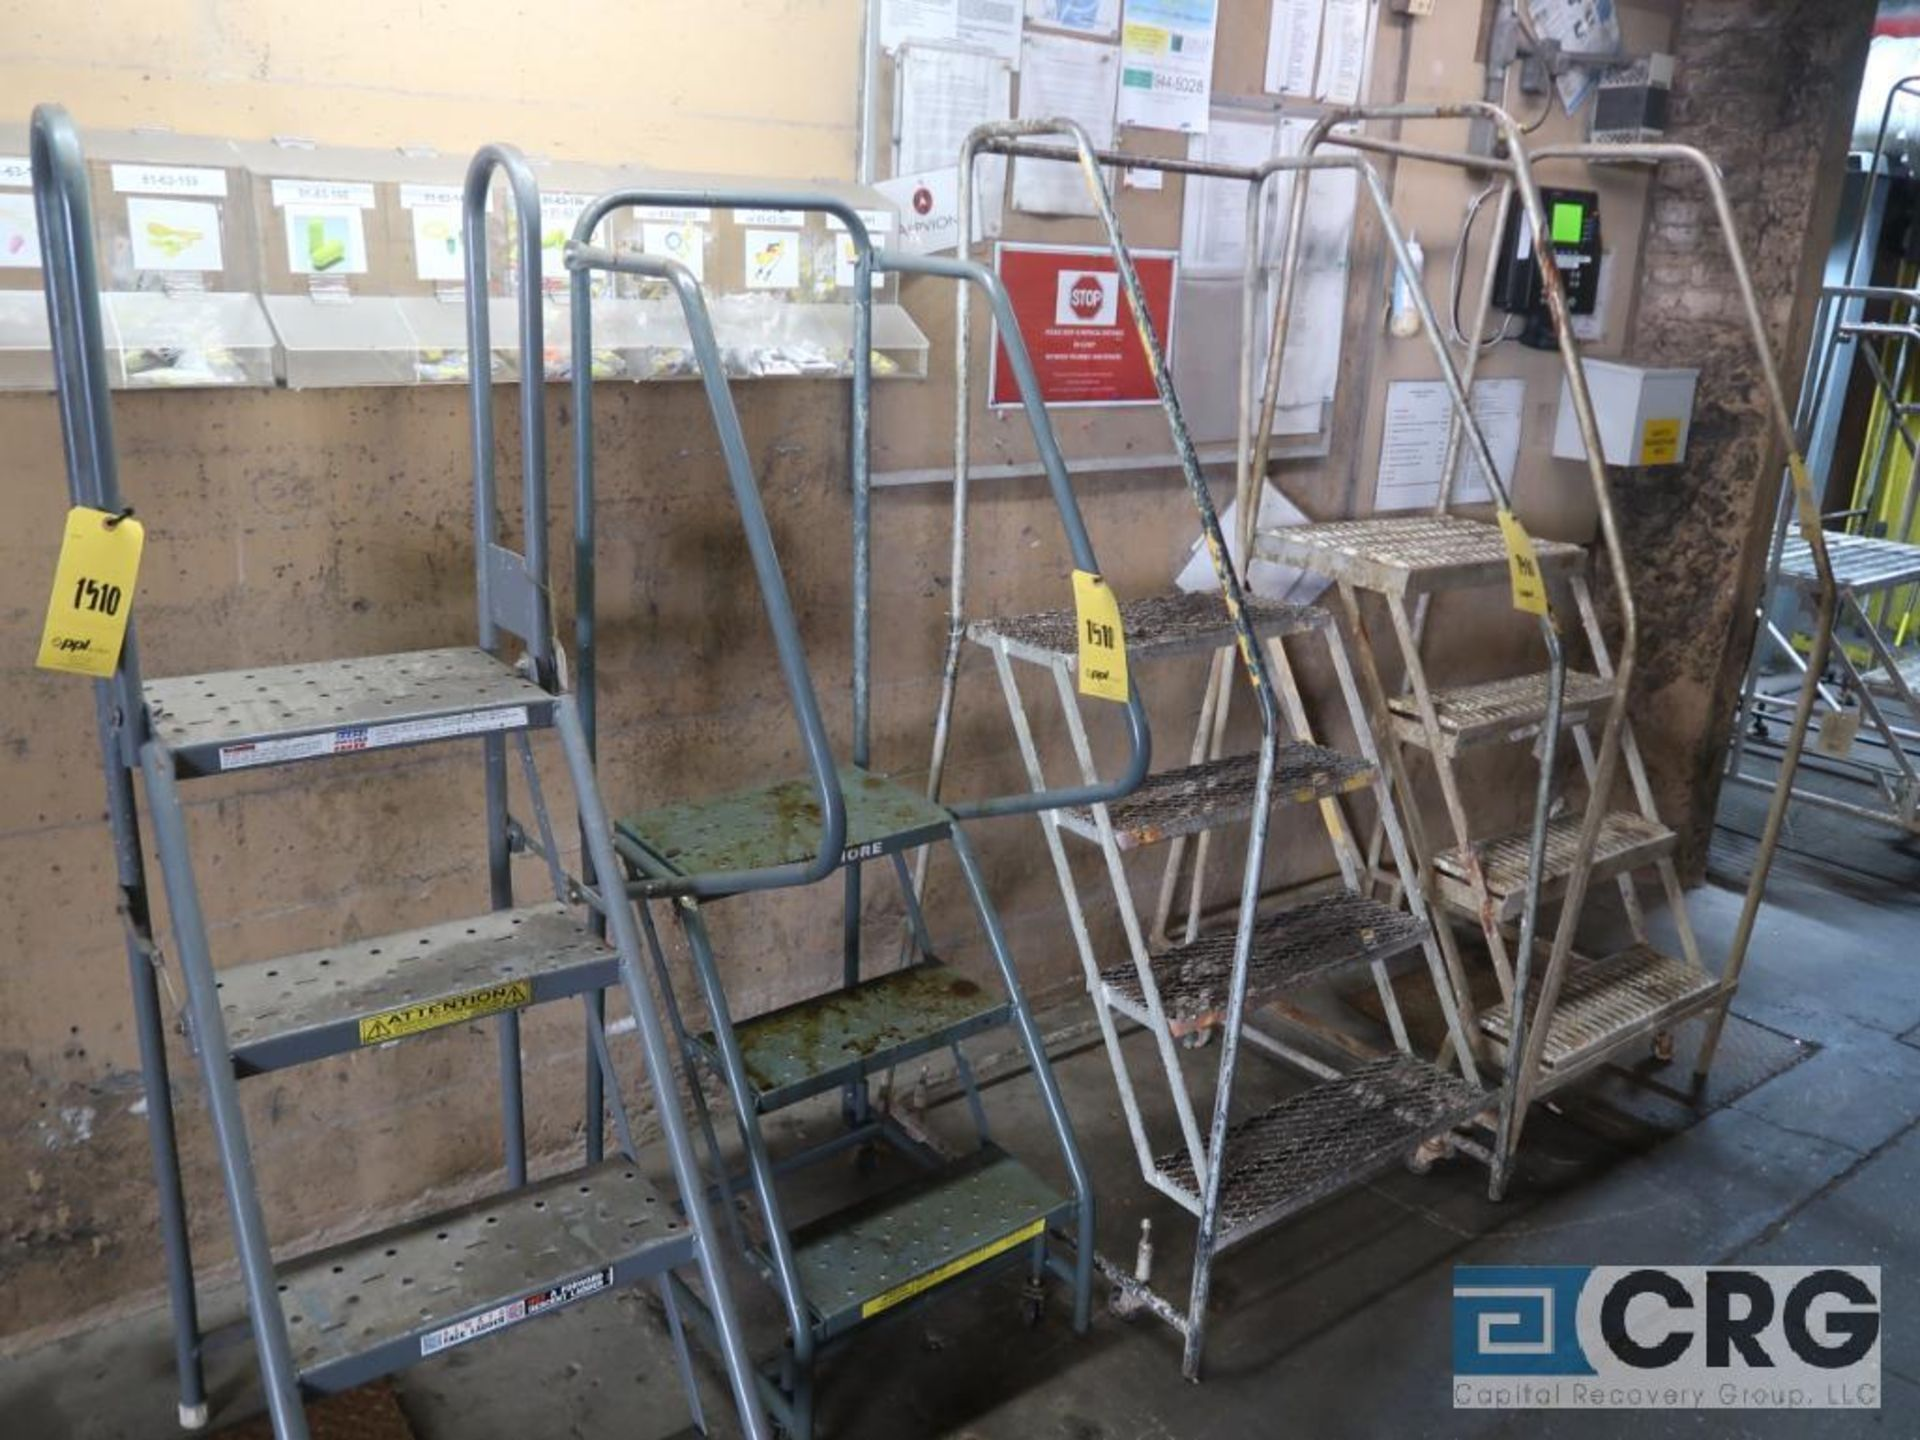 Lot of (7) safety ladders including (2) 3 step, (1) 2 step with work platform, and (3) 4 step ( - Image 2 of 2